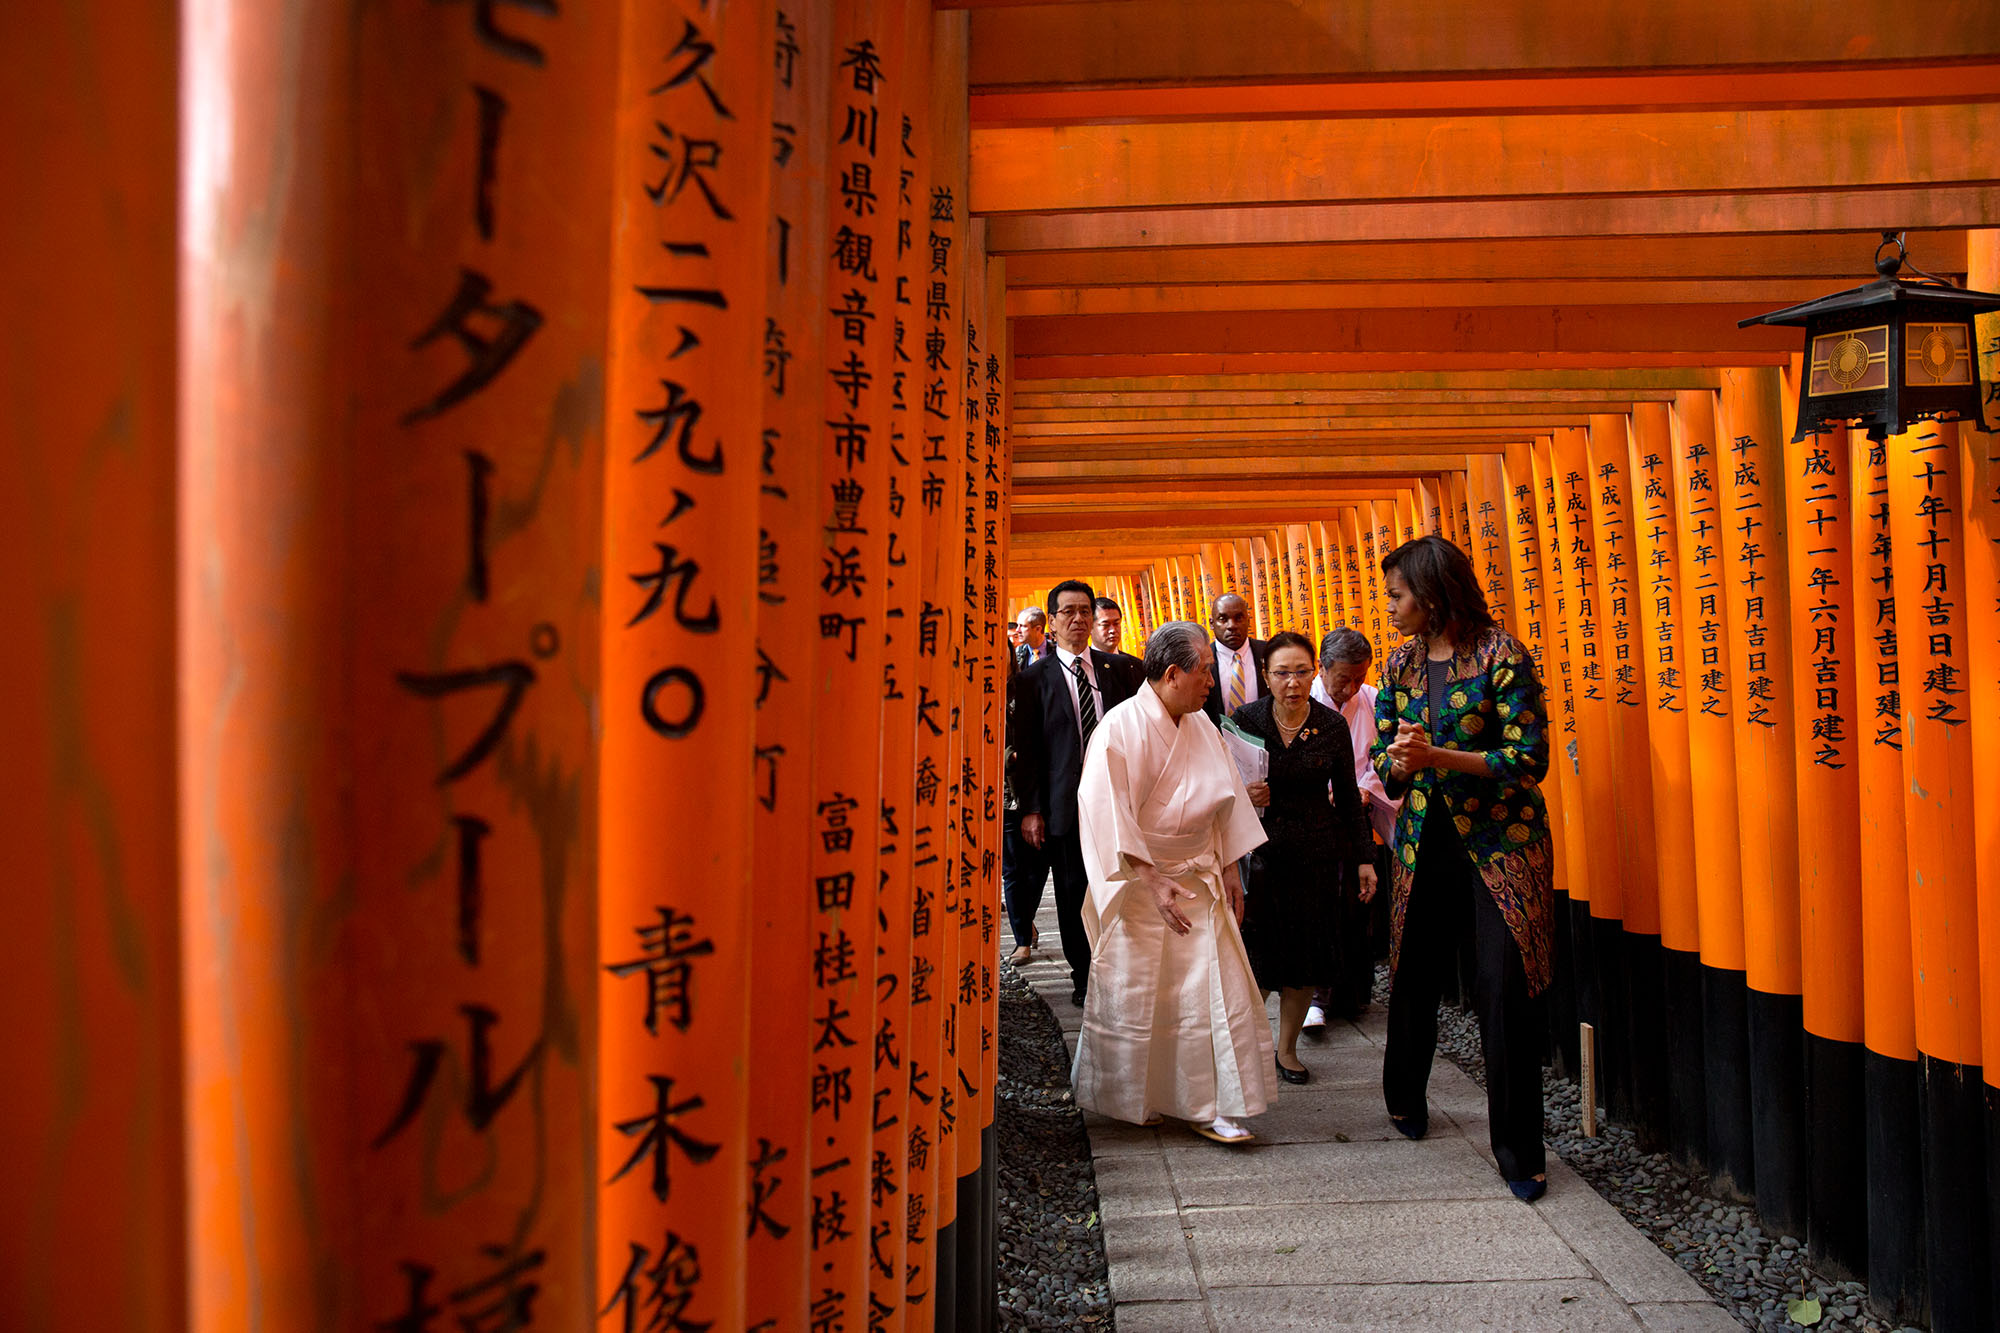 The First Lady is guided through the torri gates of the shrine. (Official White House Photo by Amanda Lucidon)